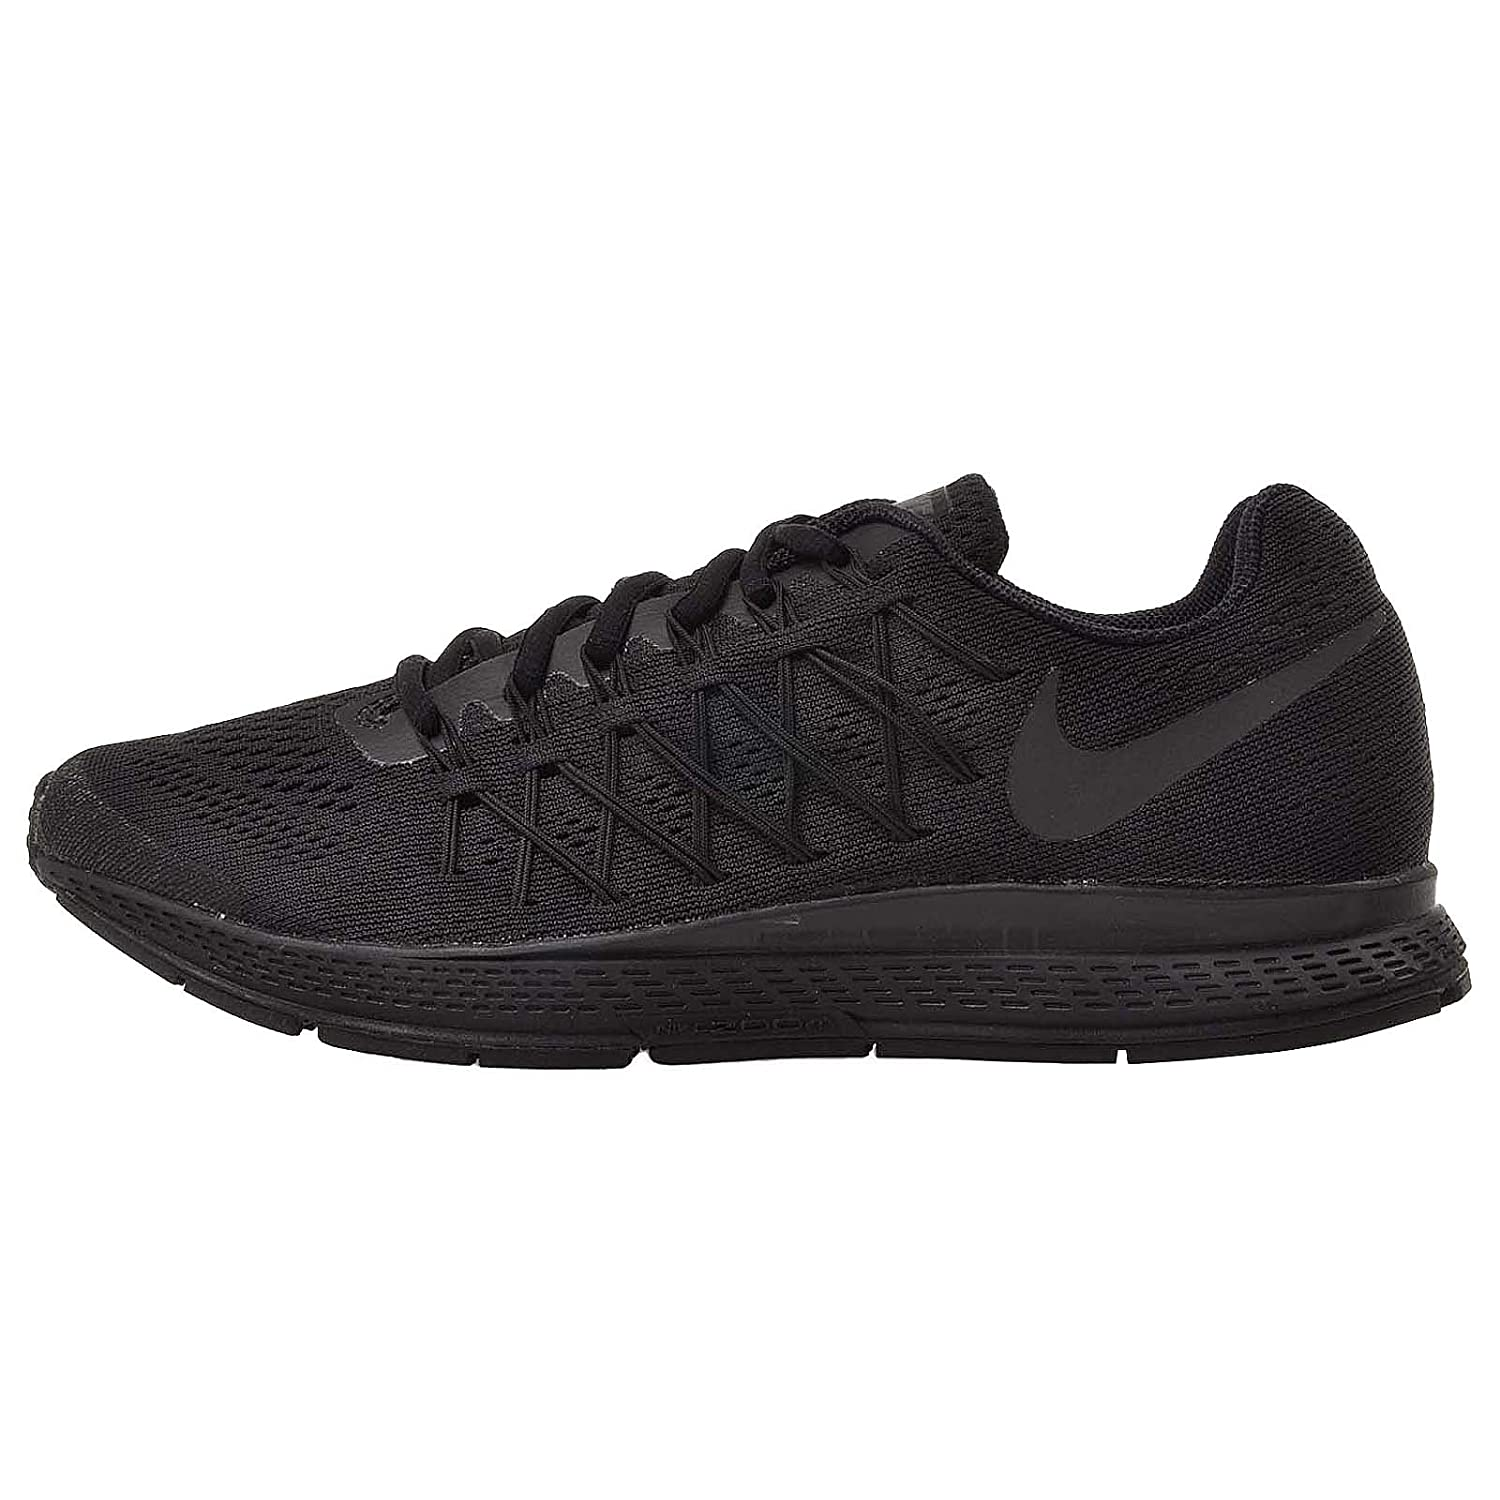 on sale 1dc17 11d9a Nike Men's Air Zoom Pegasus 32 Running Shoes